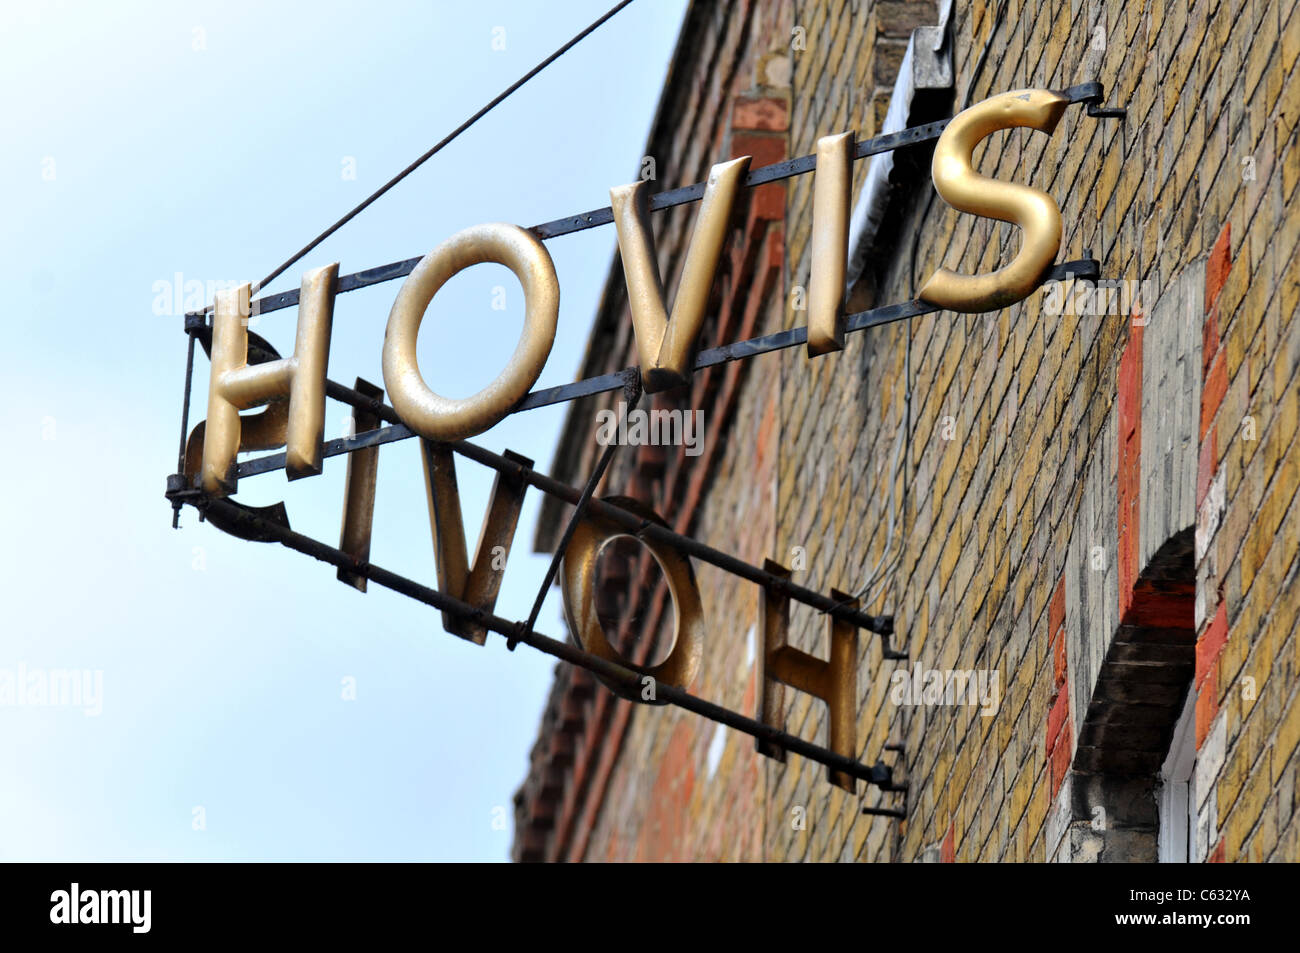 Hovis sign, Hovis Bakery sign - Stock Image